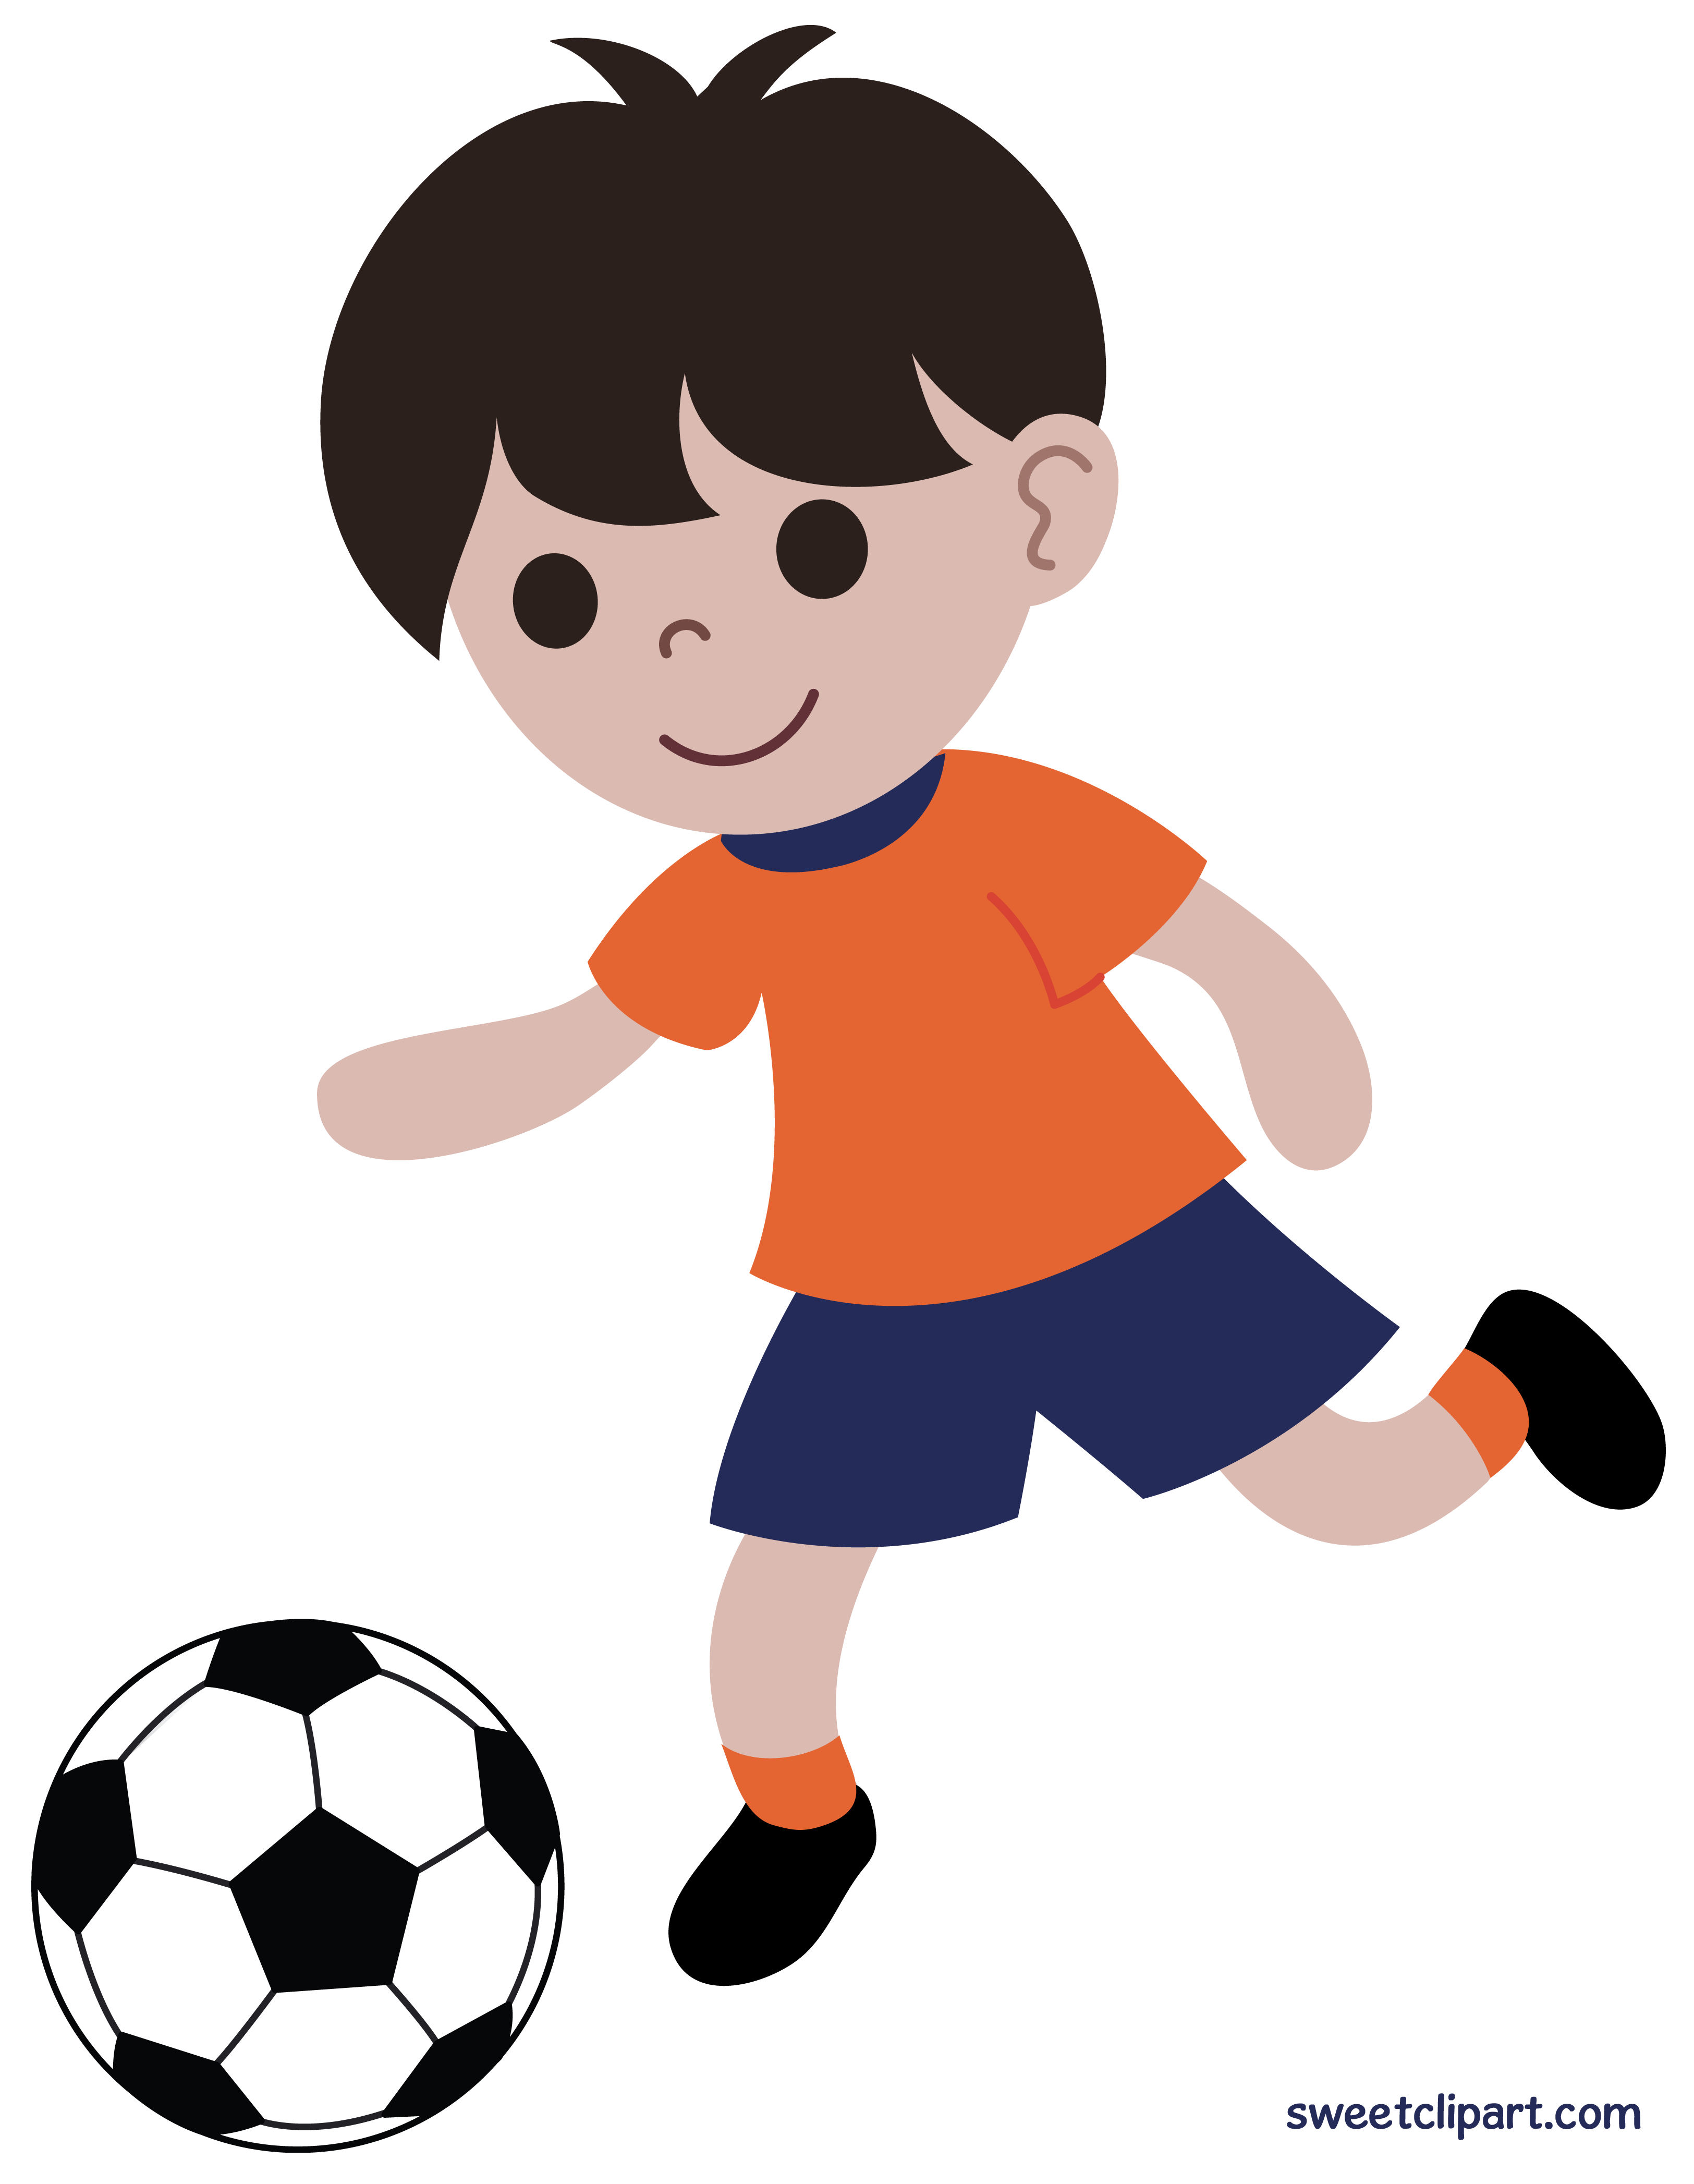 3249x4188 Collection Of Soccer Clipart Kids High Quality, Free